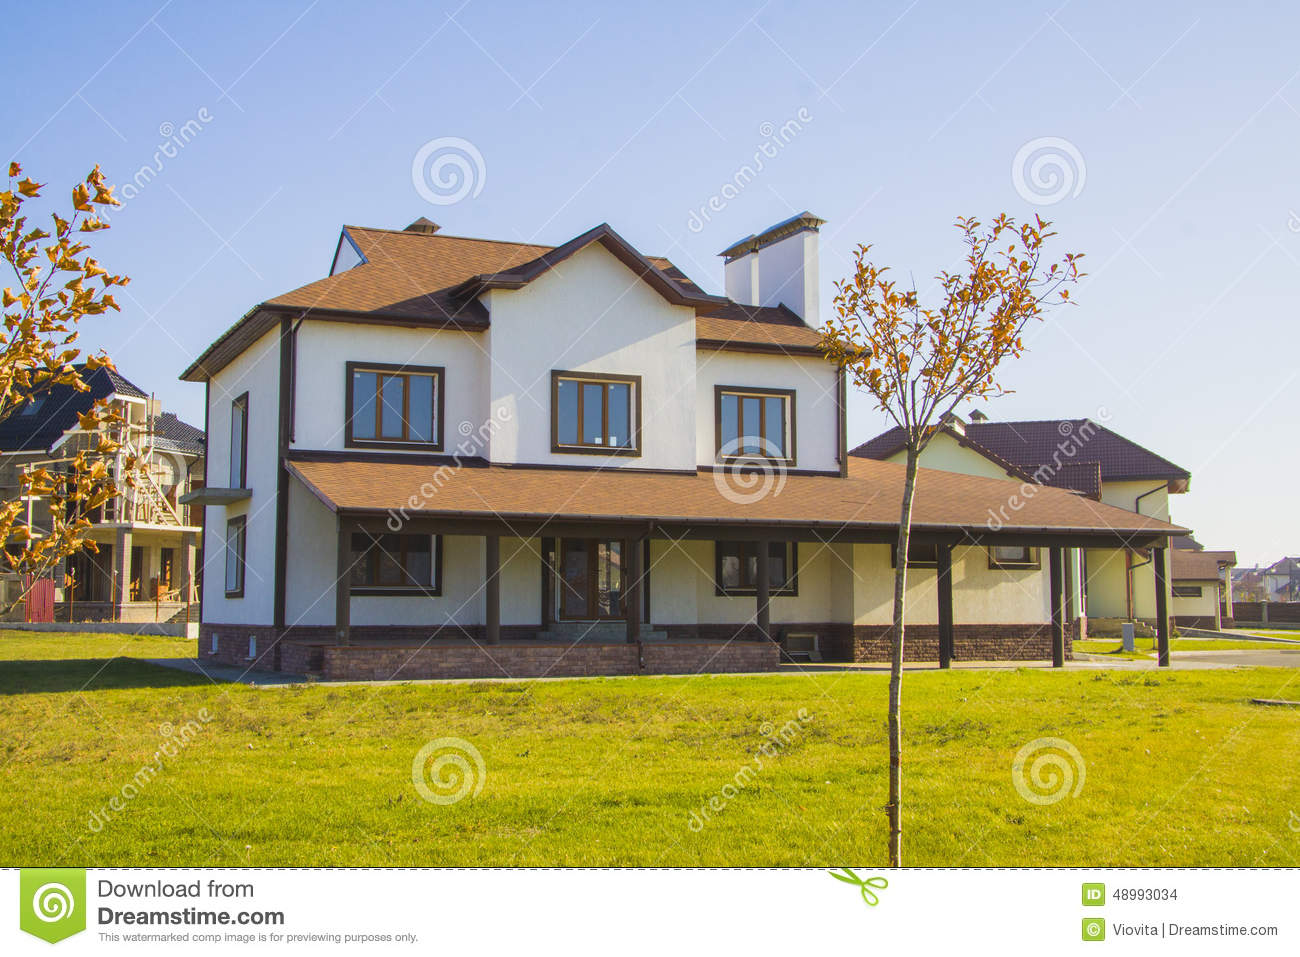 Classic american house with garden stock photo image for American classic house mouse